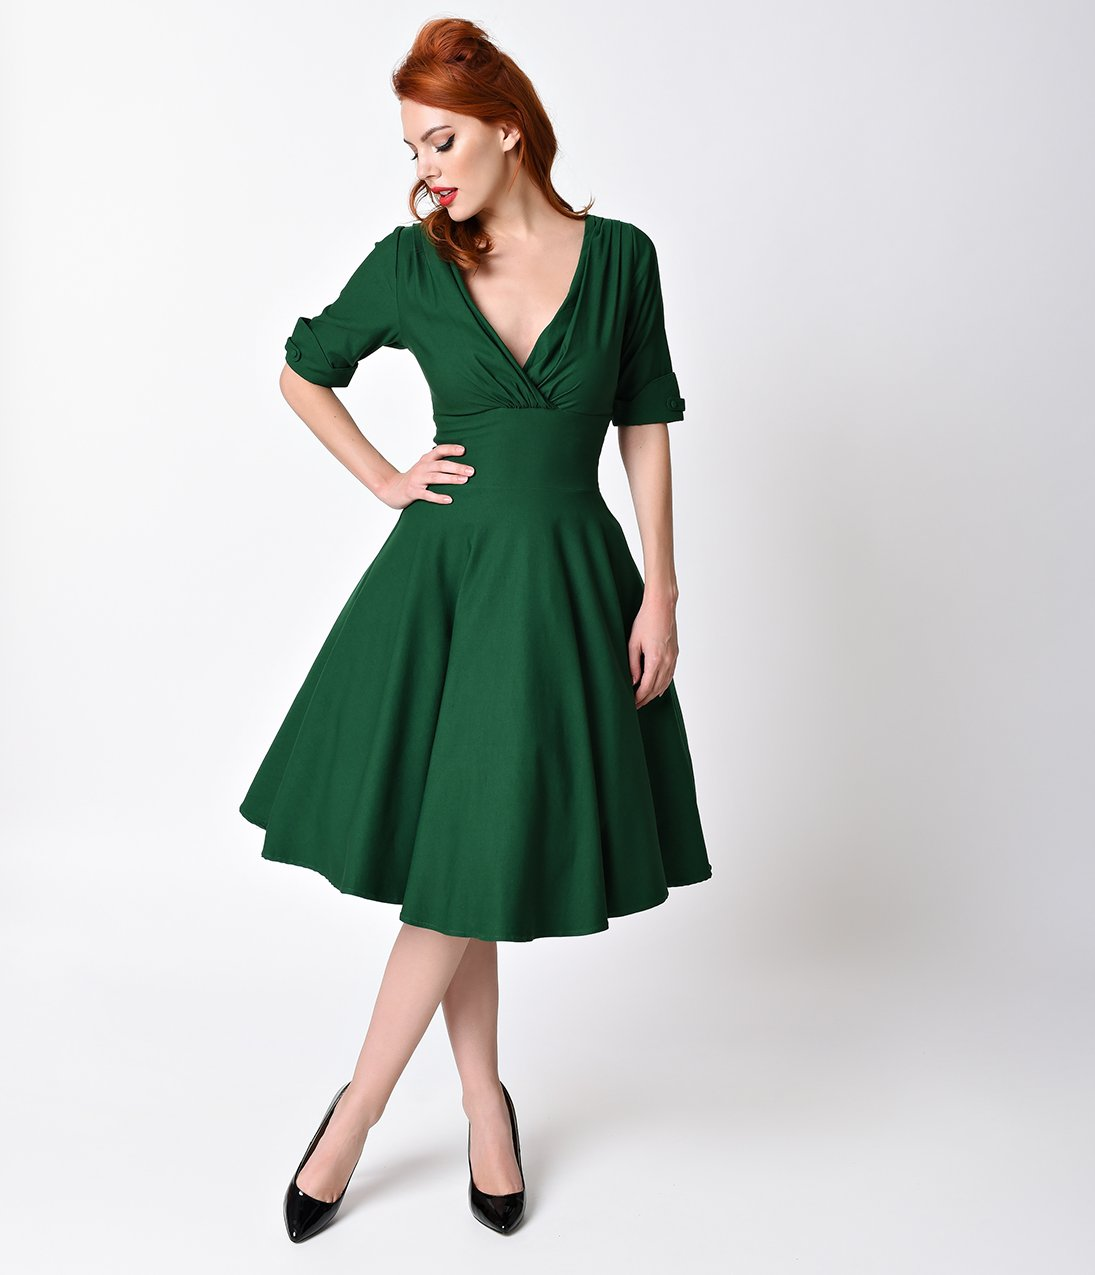 Unique Vintage 1950s Emerald Green Delores Swing Dress with Sleeves, size 14